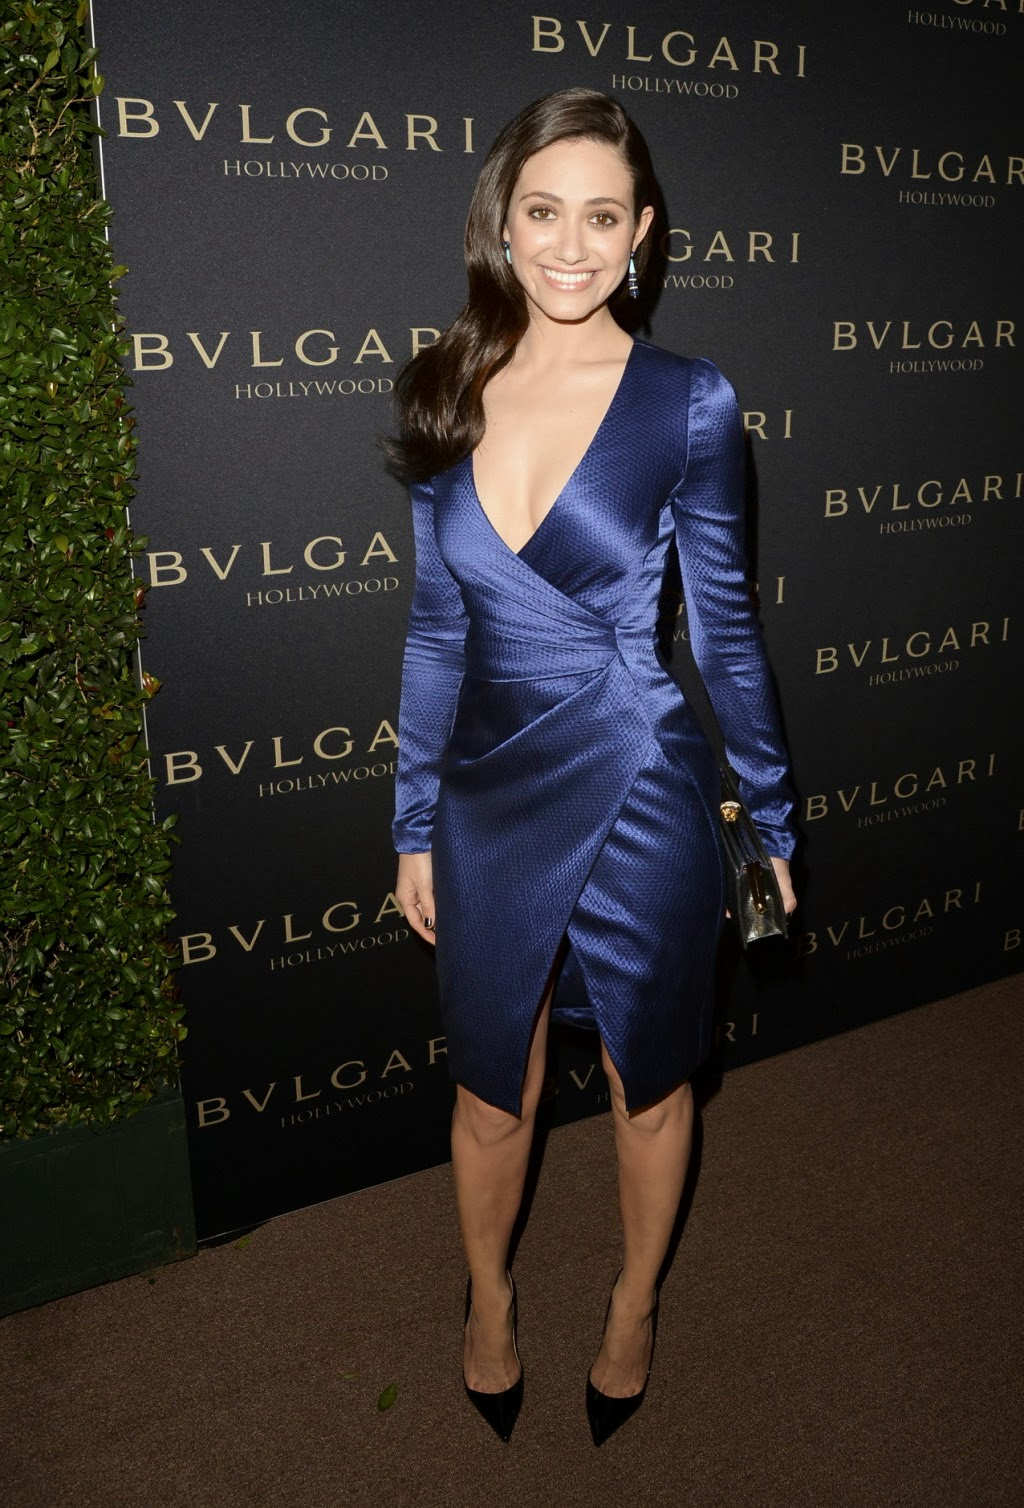 Emmy Rossum Hot Cleavage At Decades Of Glamour Event In